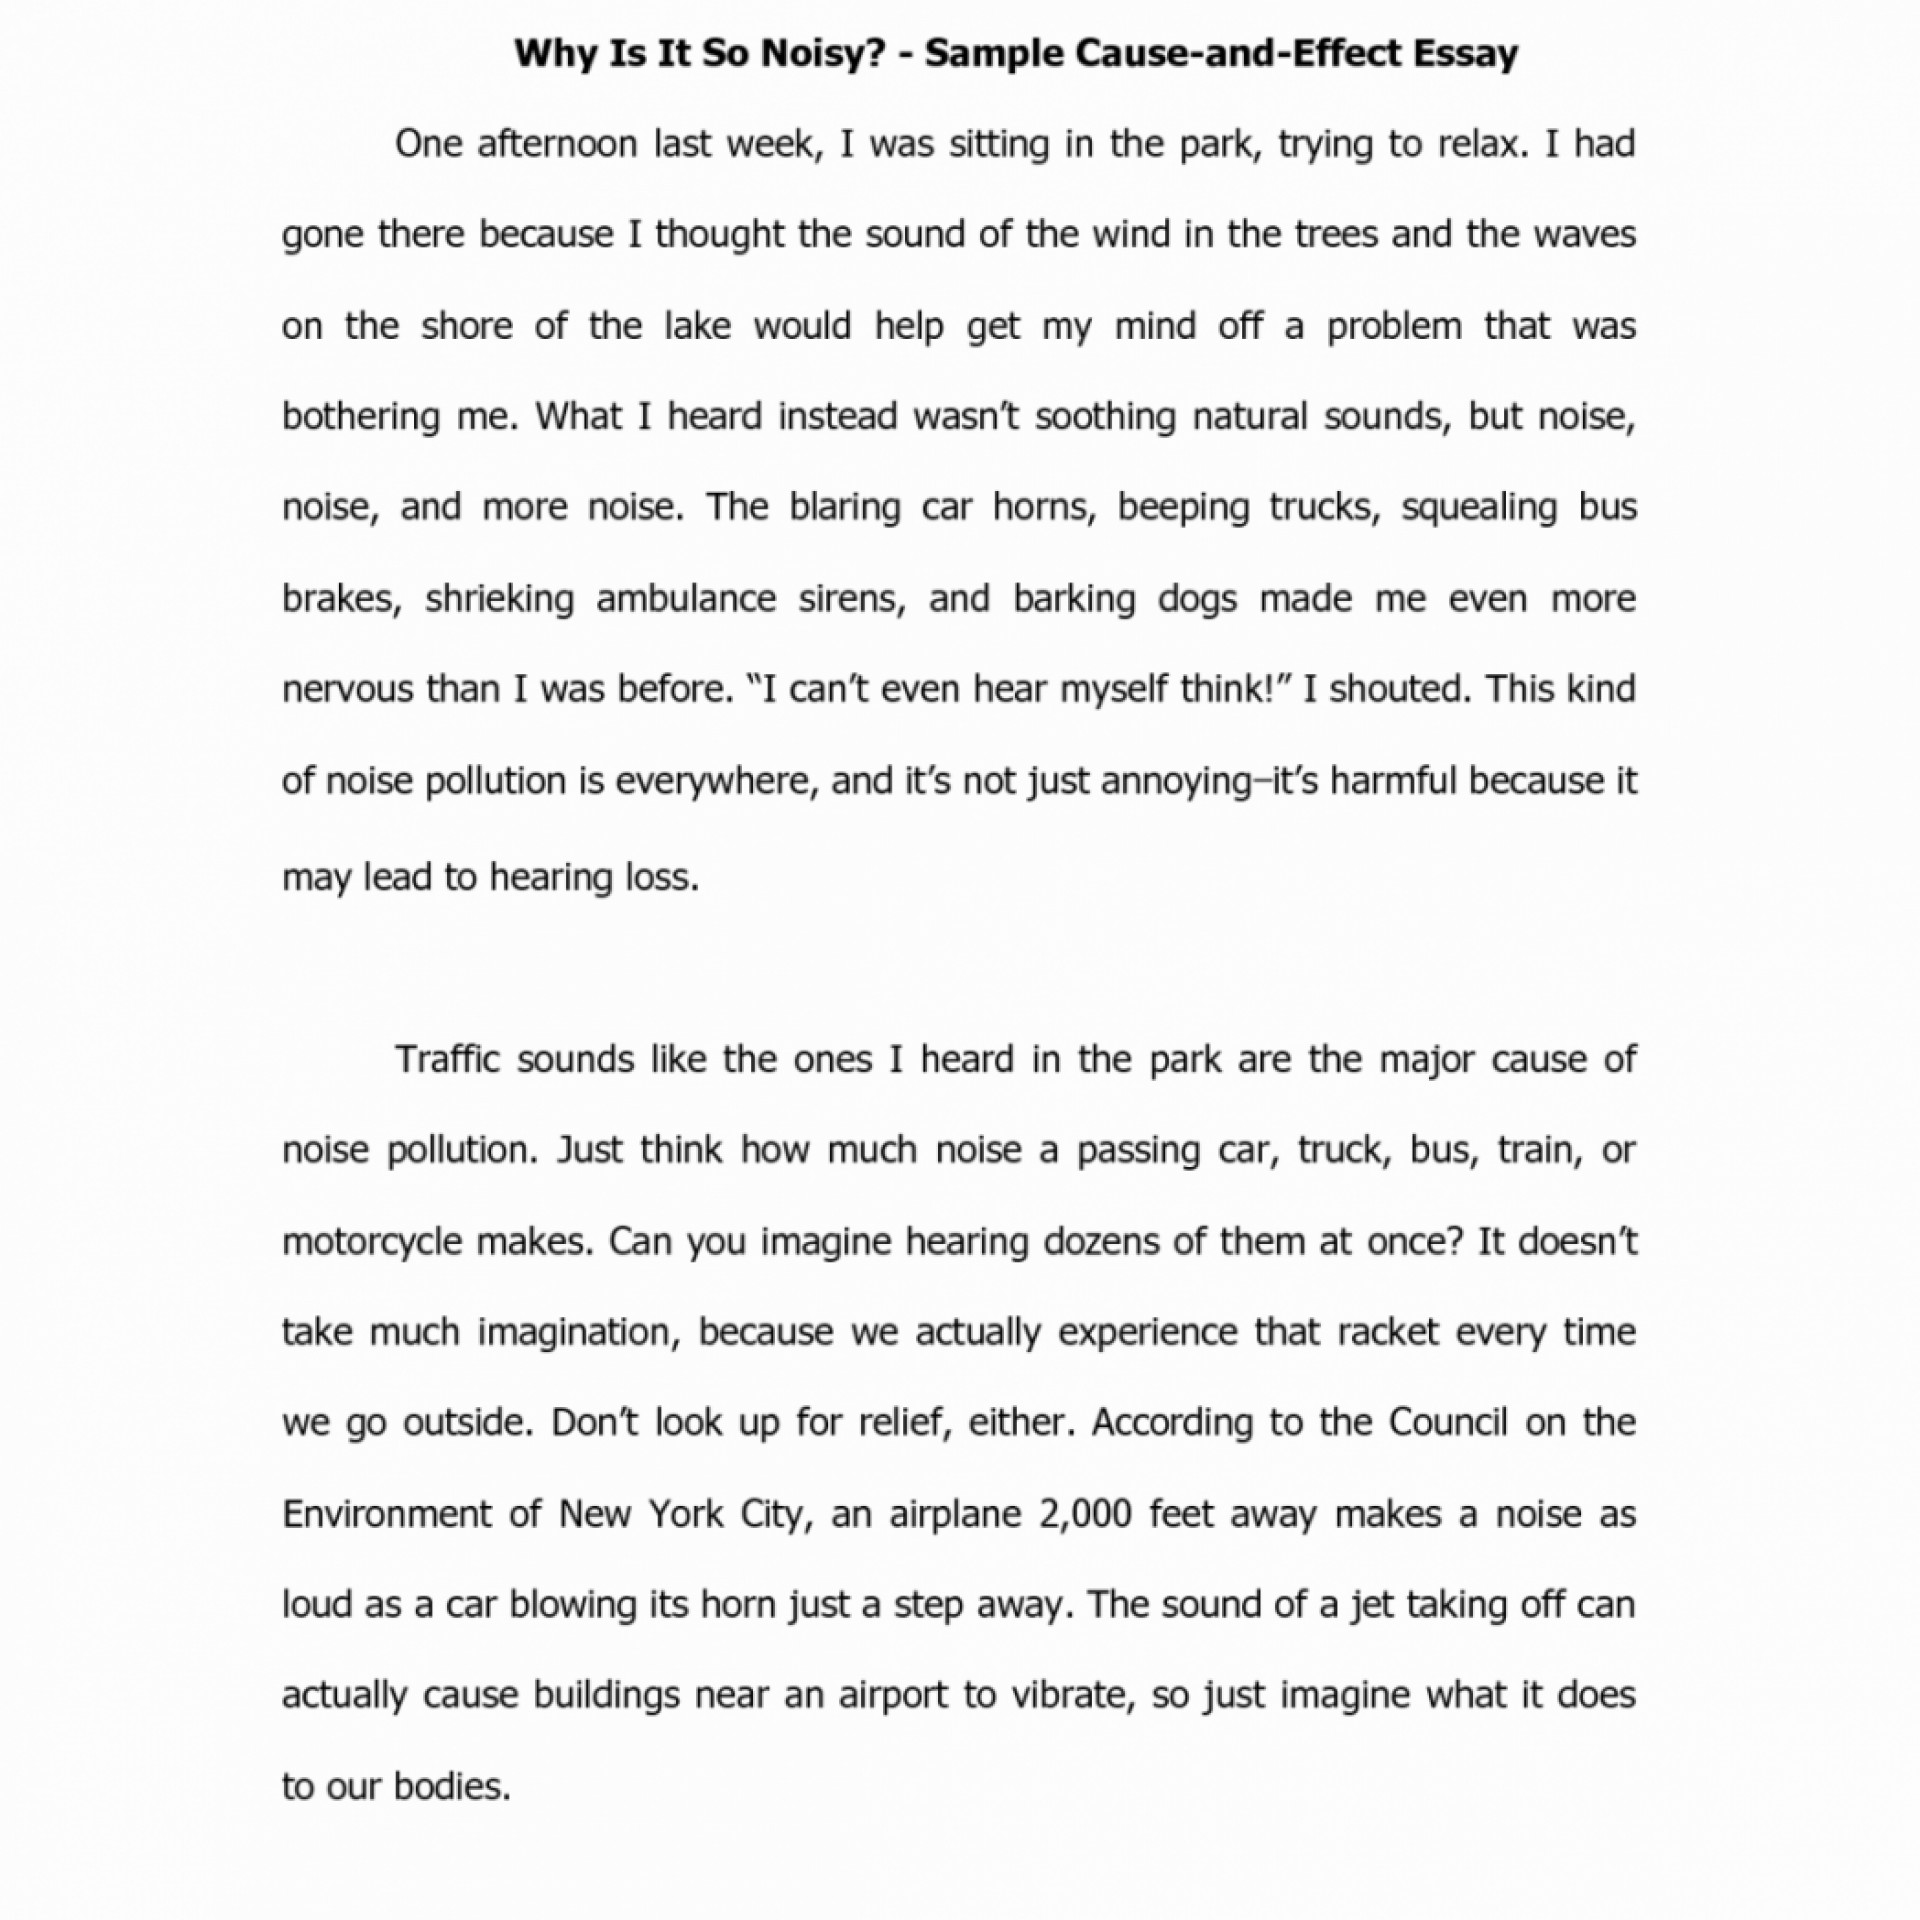 027 Cause And Effect Essays Format Best Of For Or Good Cover Bystander Domino Analysis Ielts Free 6th Grade College Pdf Middle School 1048x1048 Amazing Essay Examples Divorce Sentences 1920